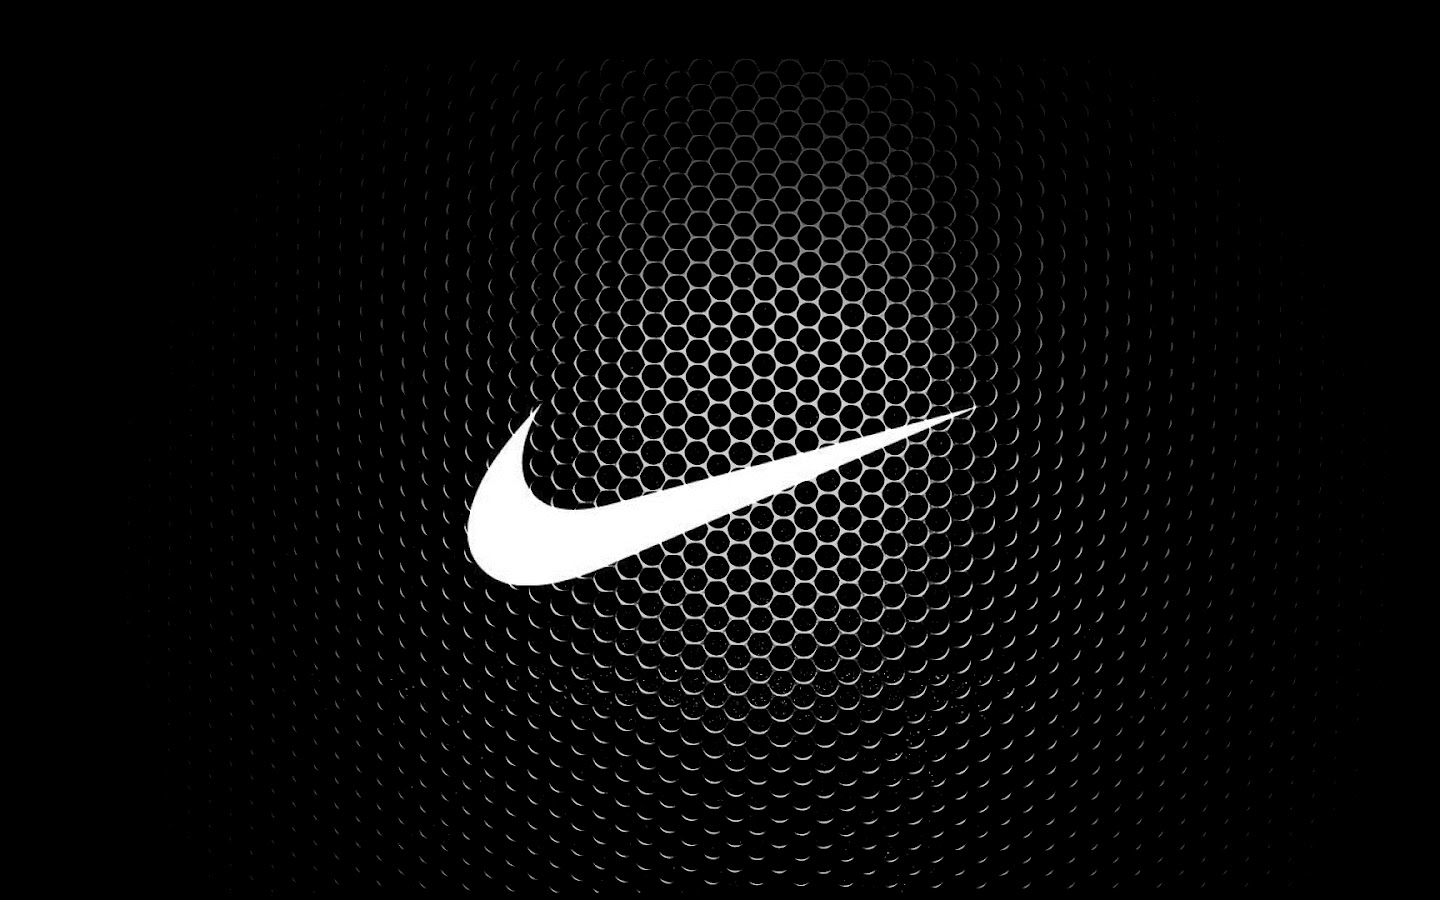 Download Nike Sb Wallpaper Iphone Hd Photo Wallpaper Collection Hd Wallpapers 1600x900 48